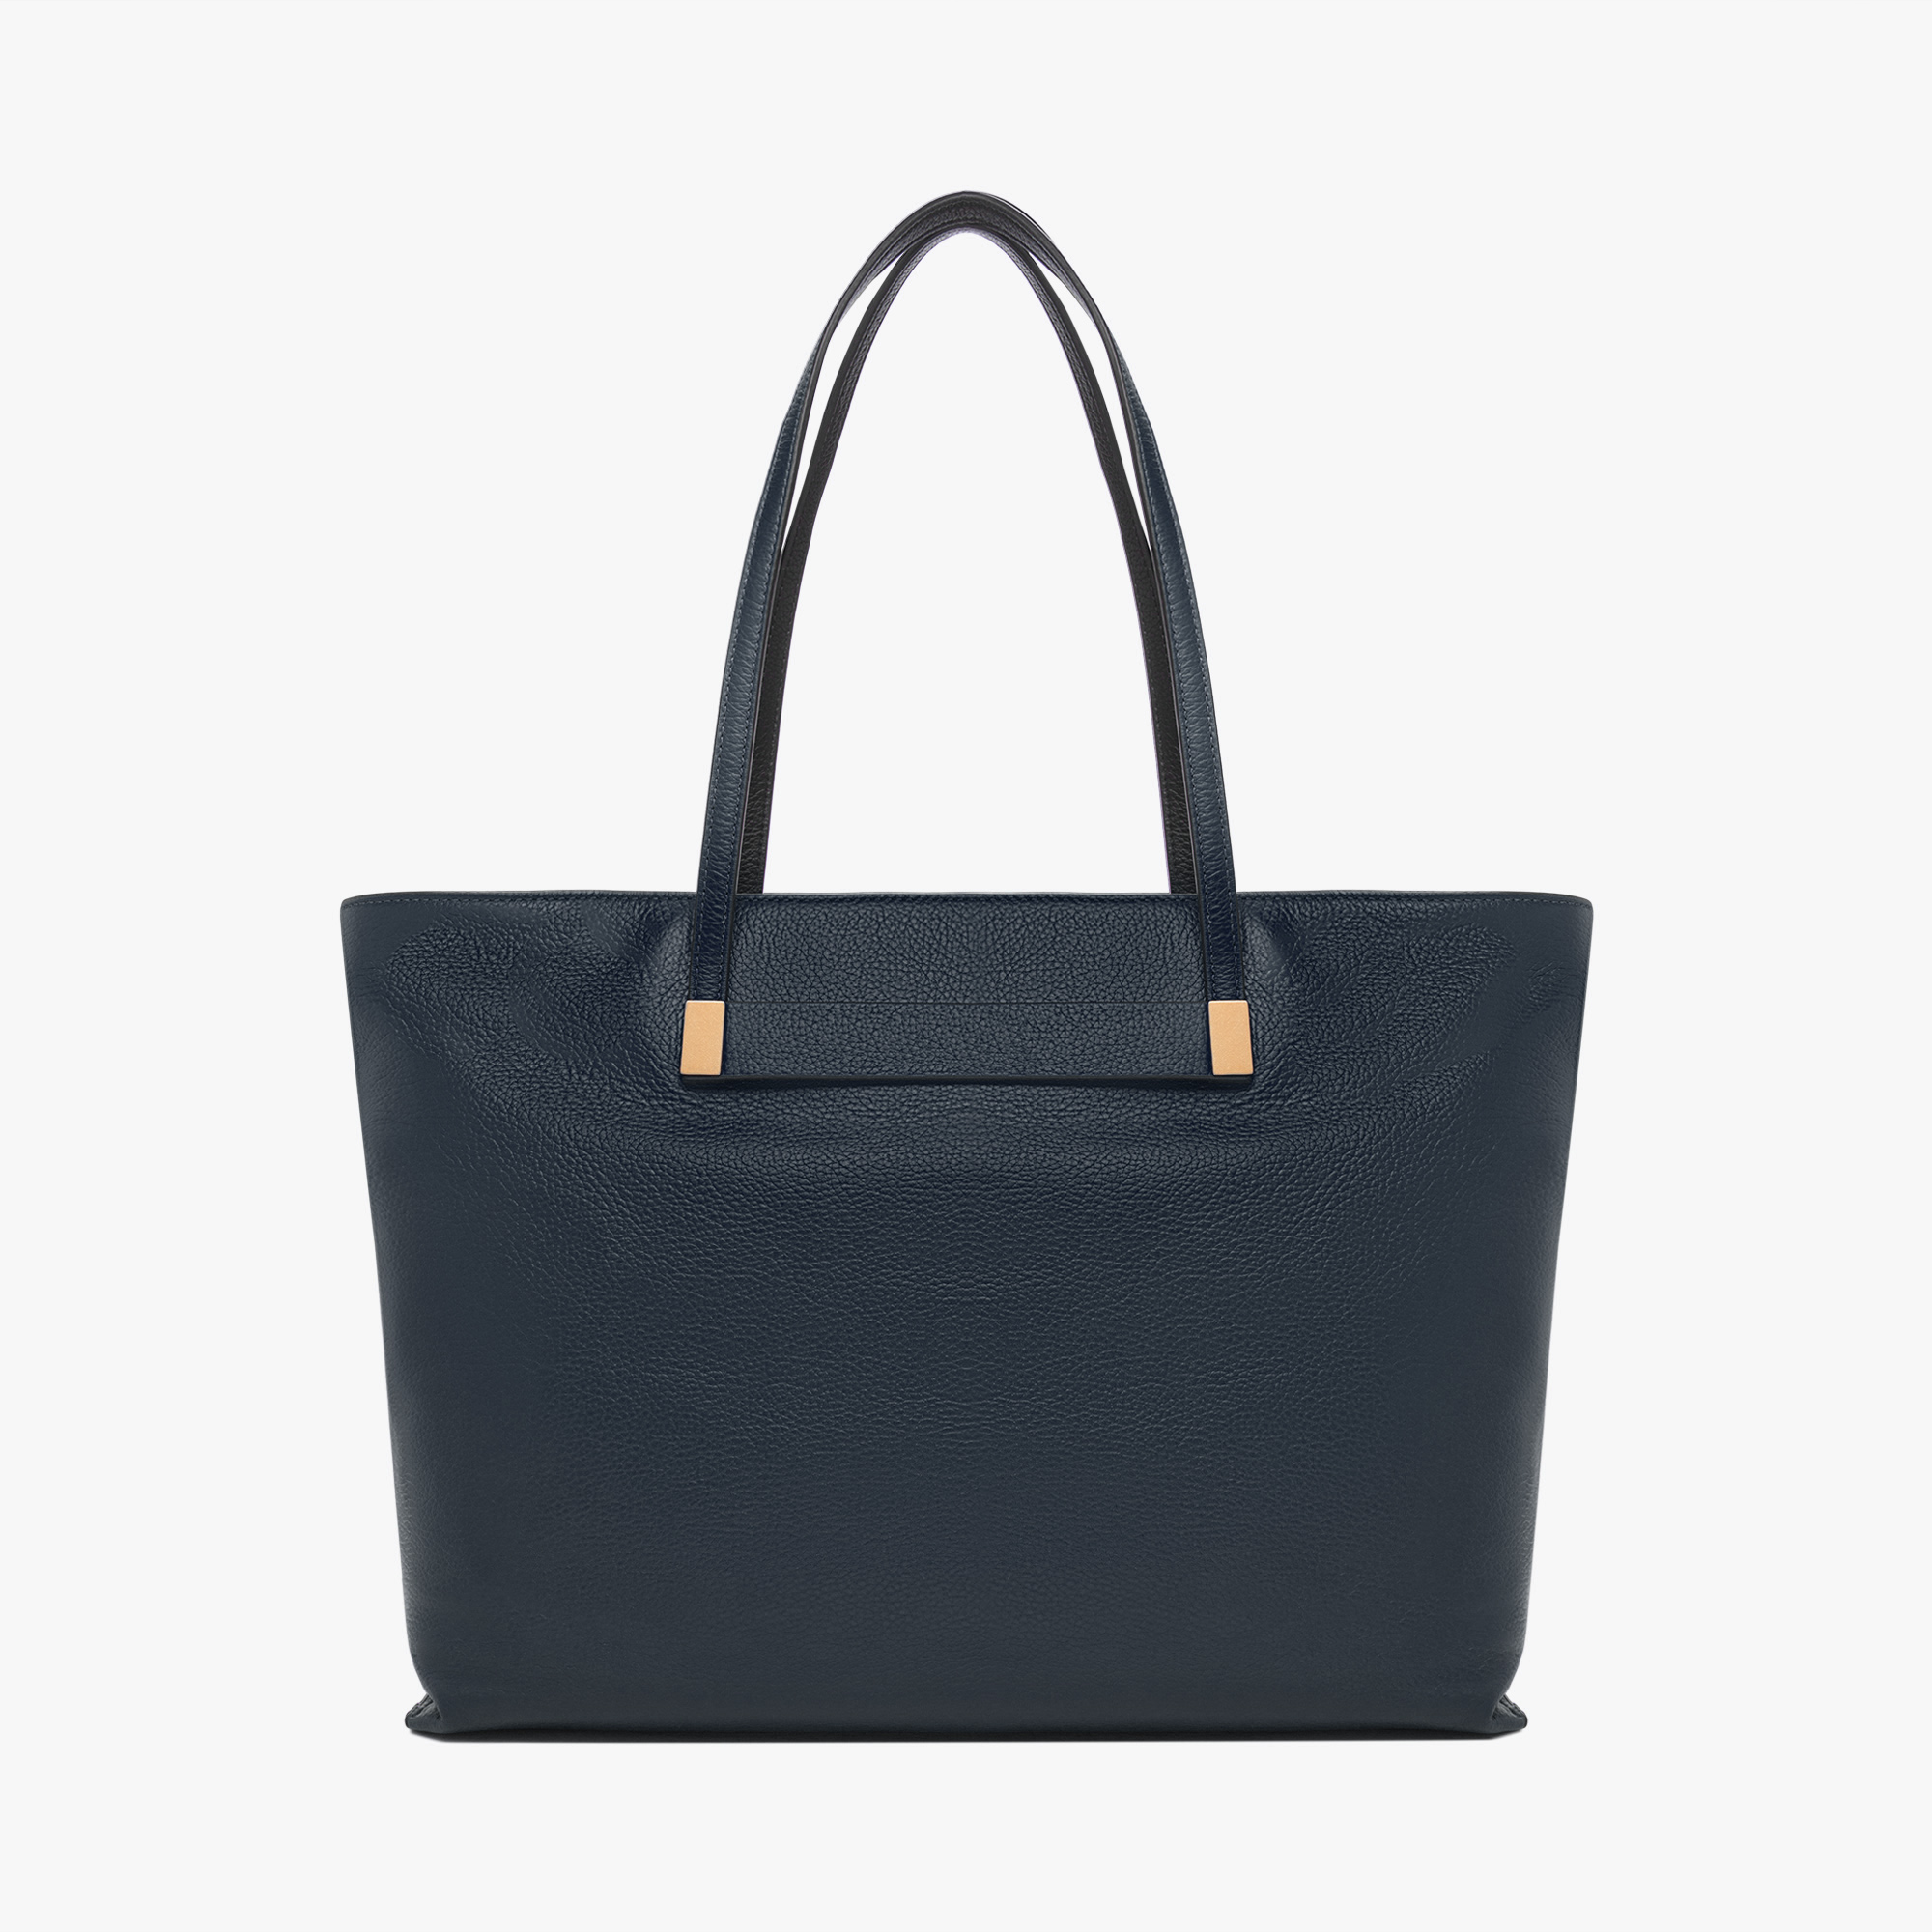 Auranne leather shopping tote